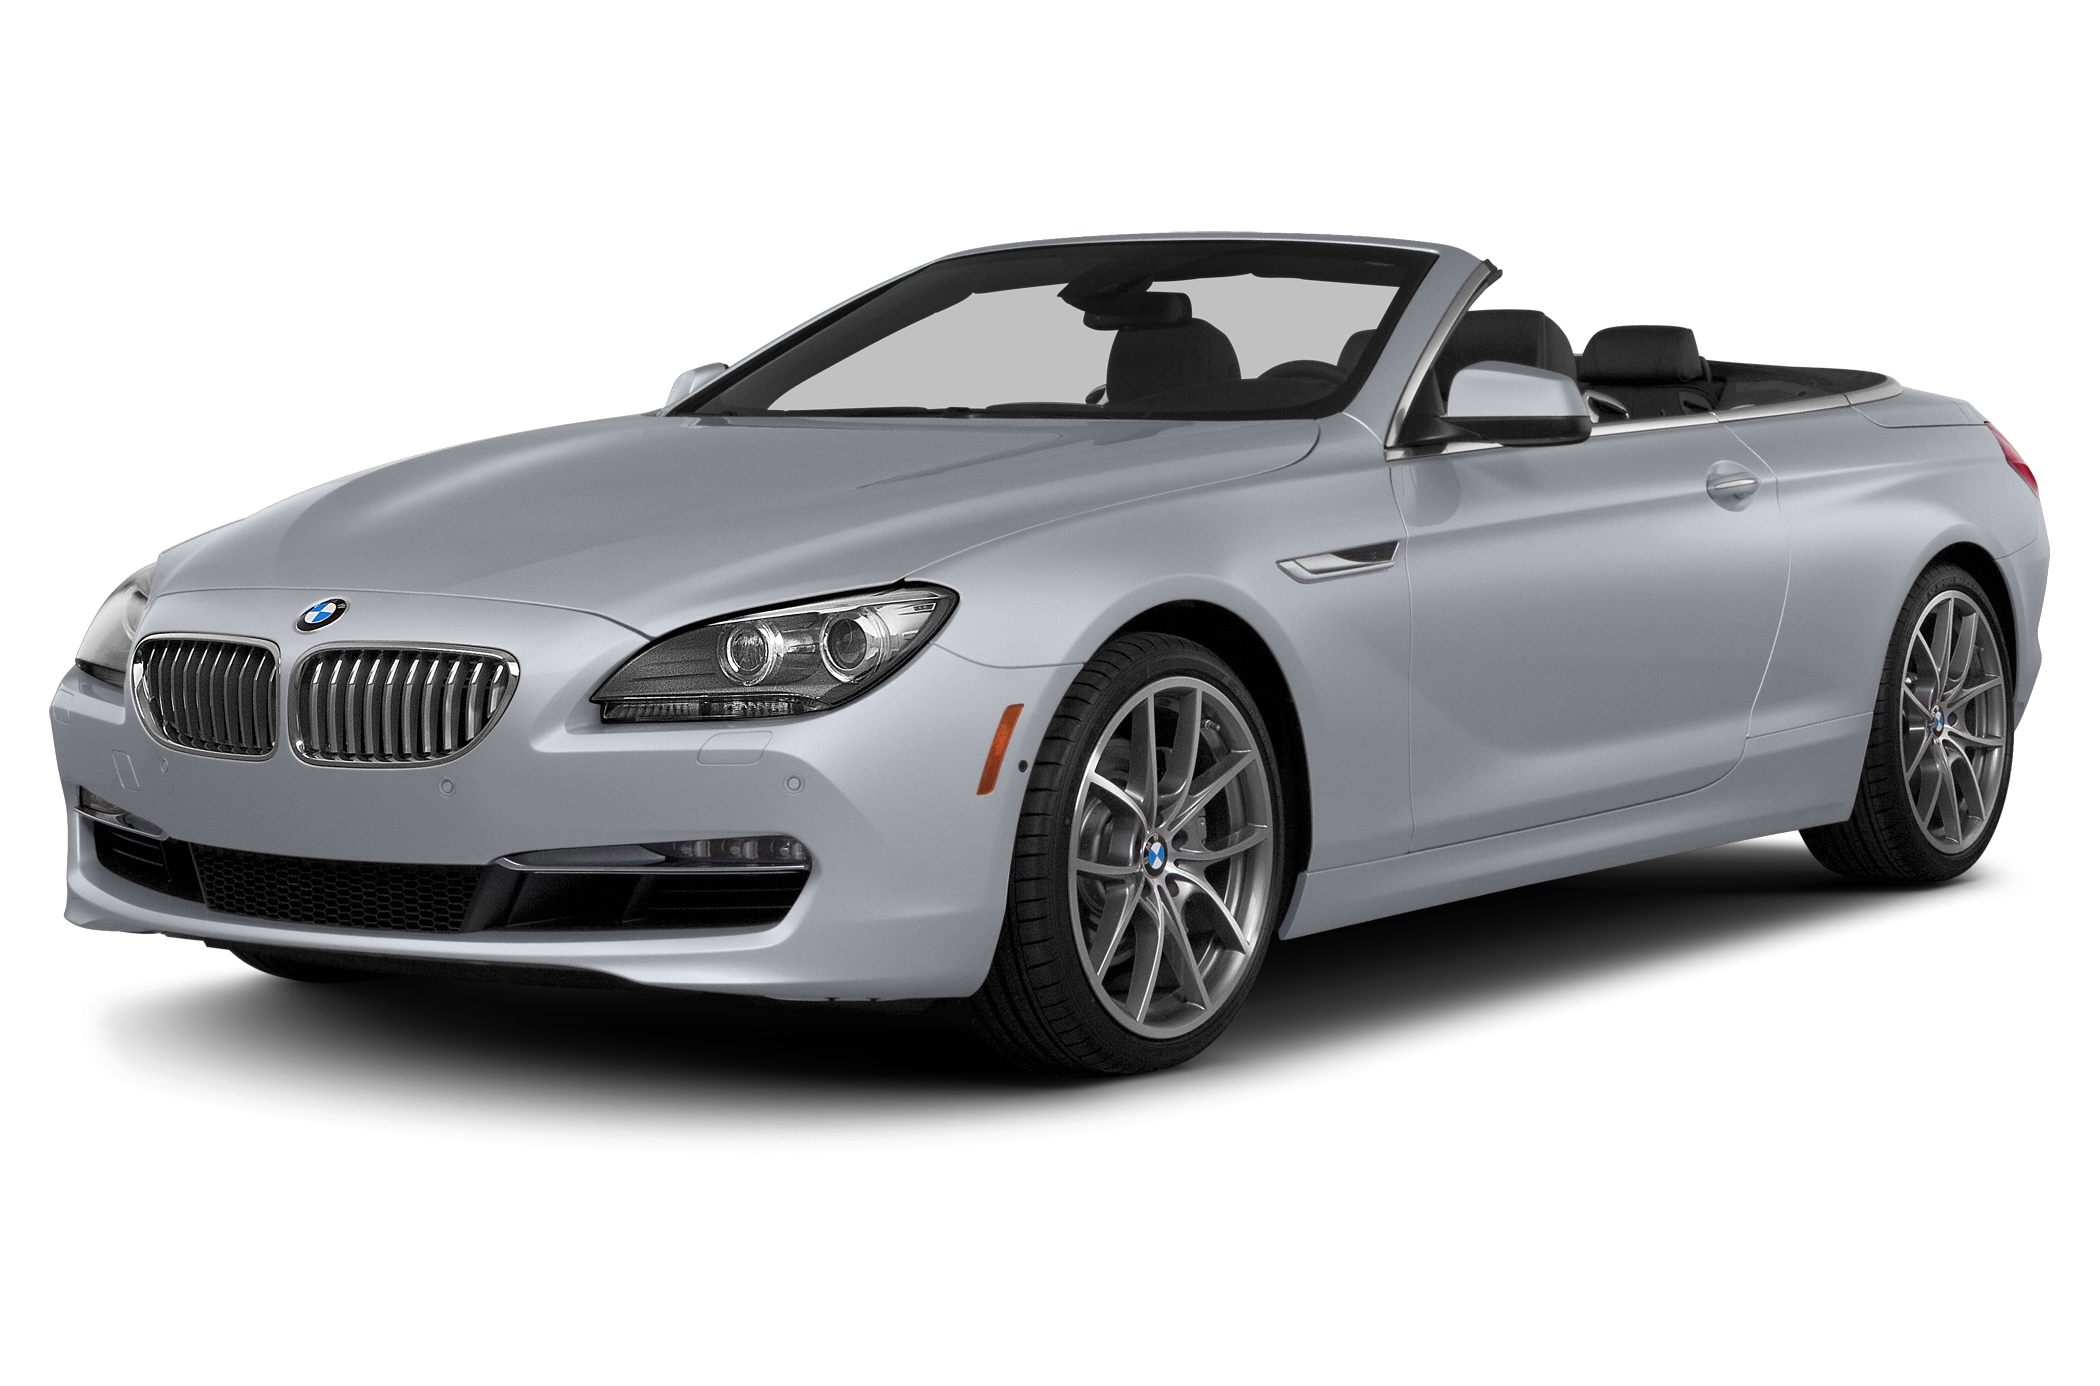 2015 BMW 640 I XDrive Convertible for sale in Chicago for $88,998 with 536 miles.